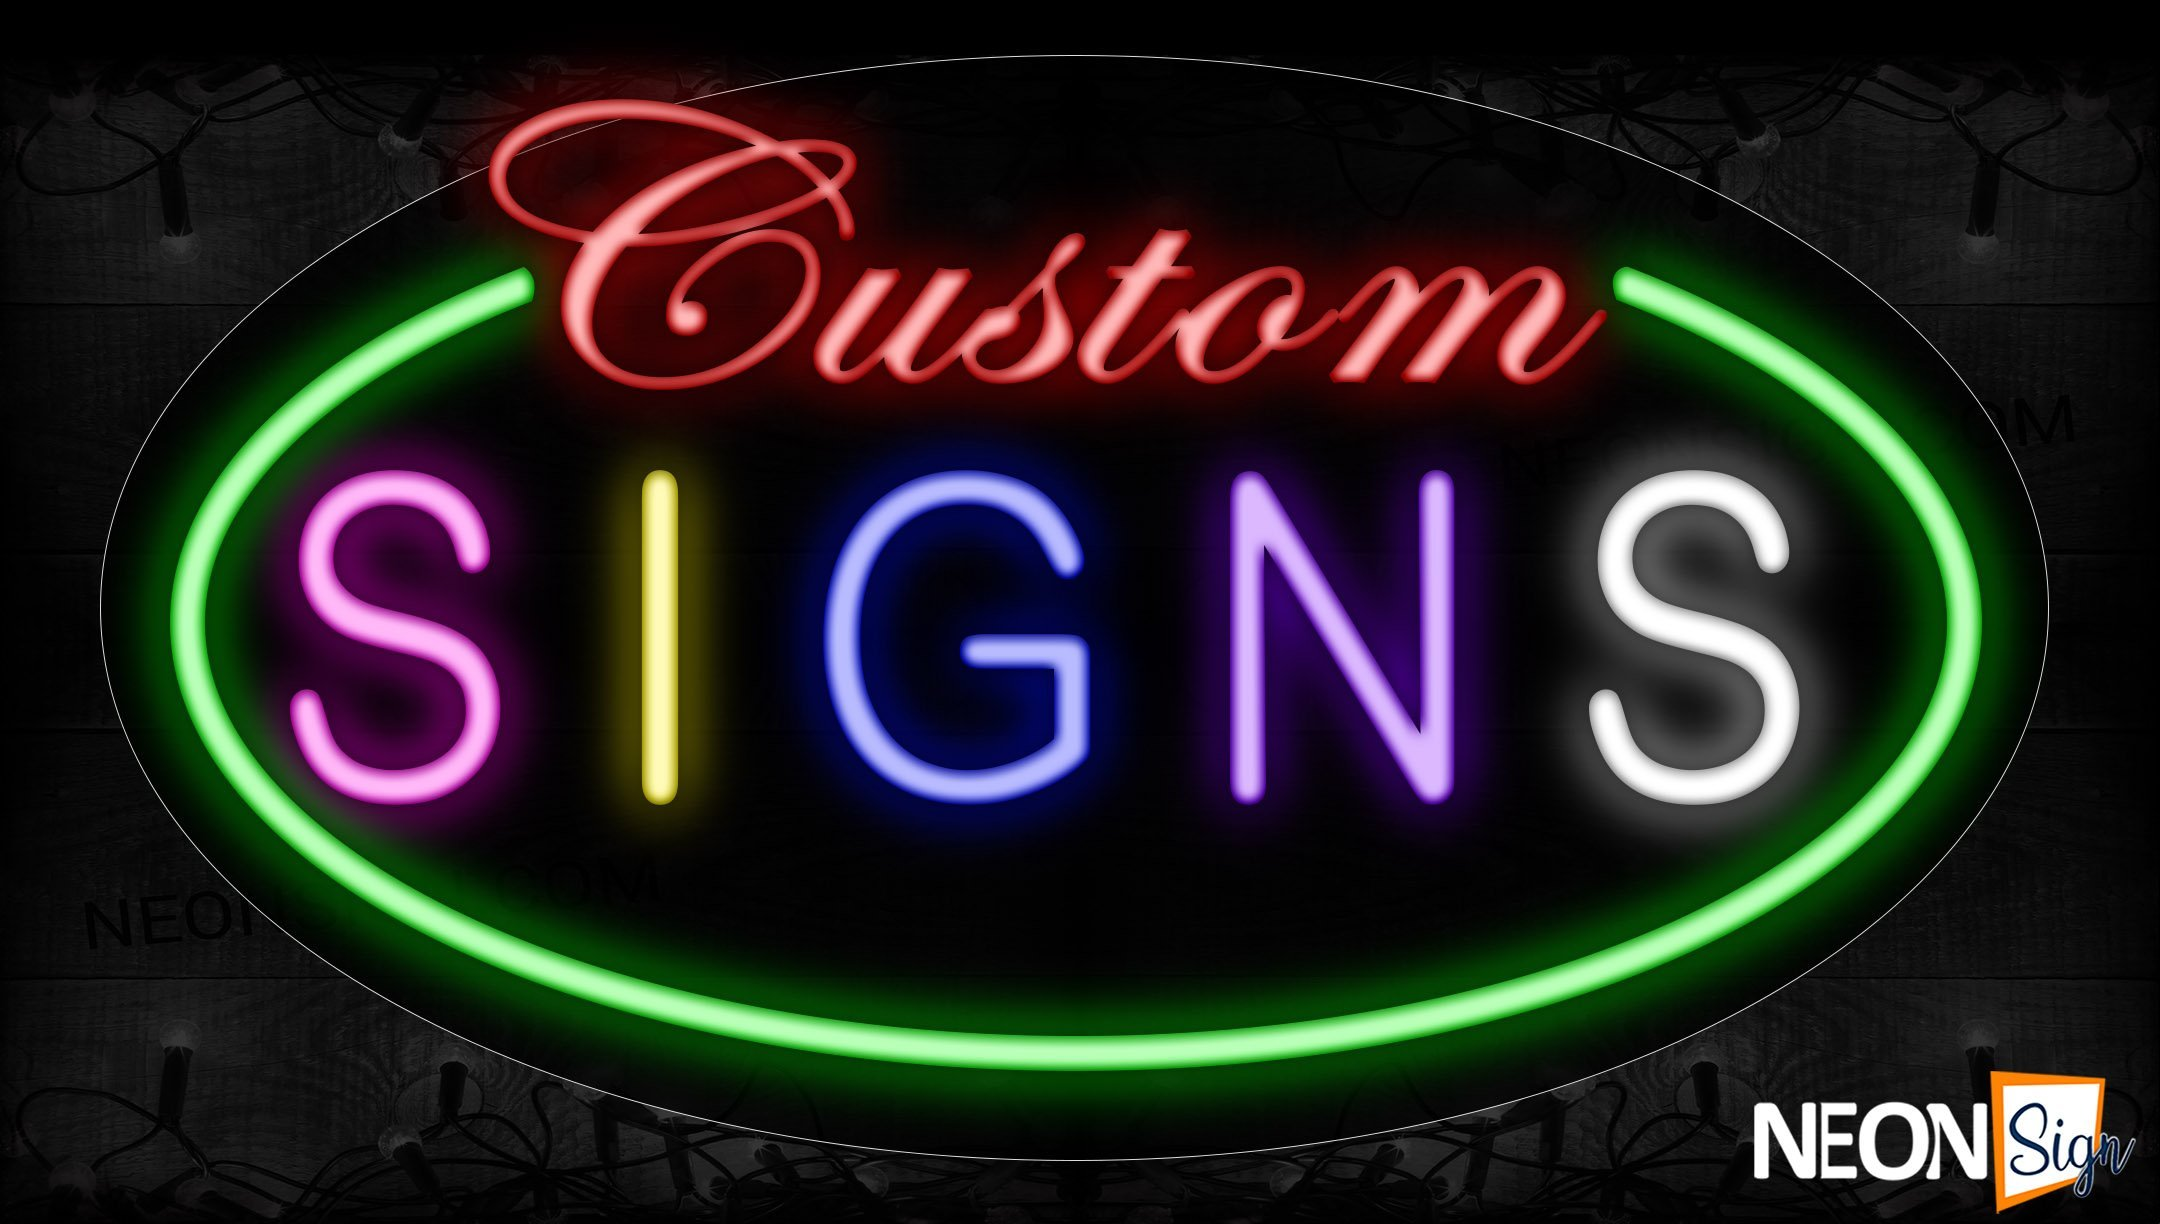 Image of 14402 Custom Signs With Green Oval Border Neon Signs_17x30 Contoured Black Backing